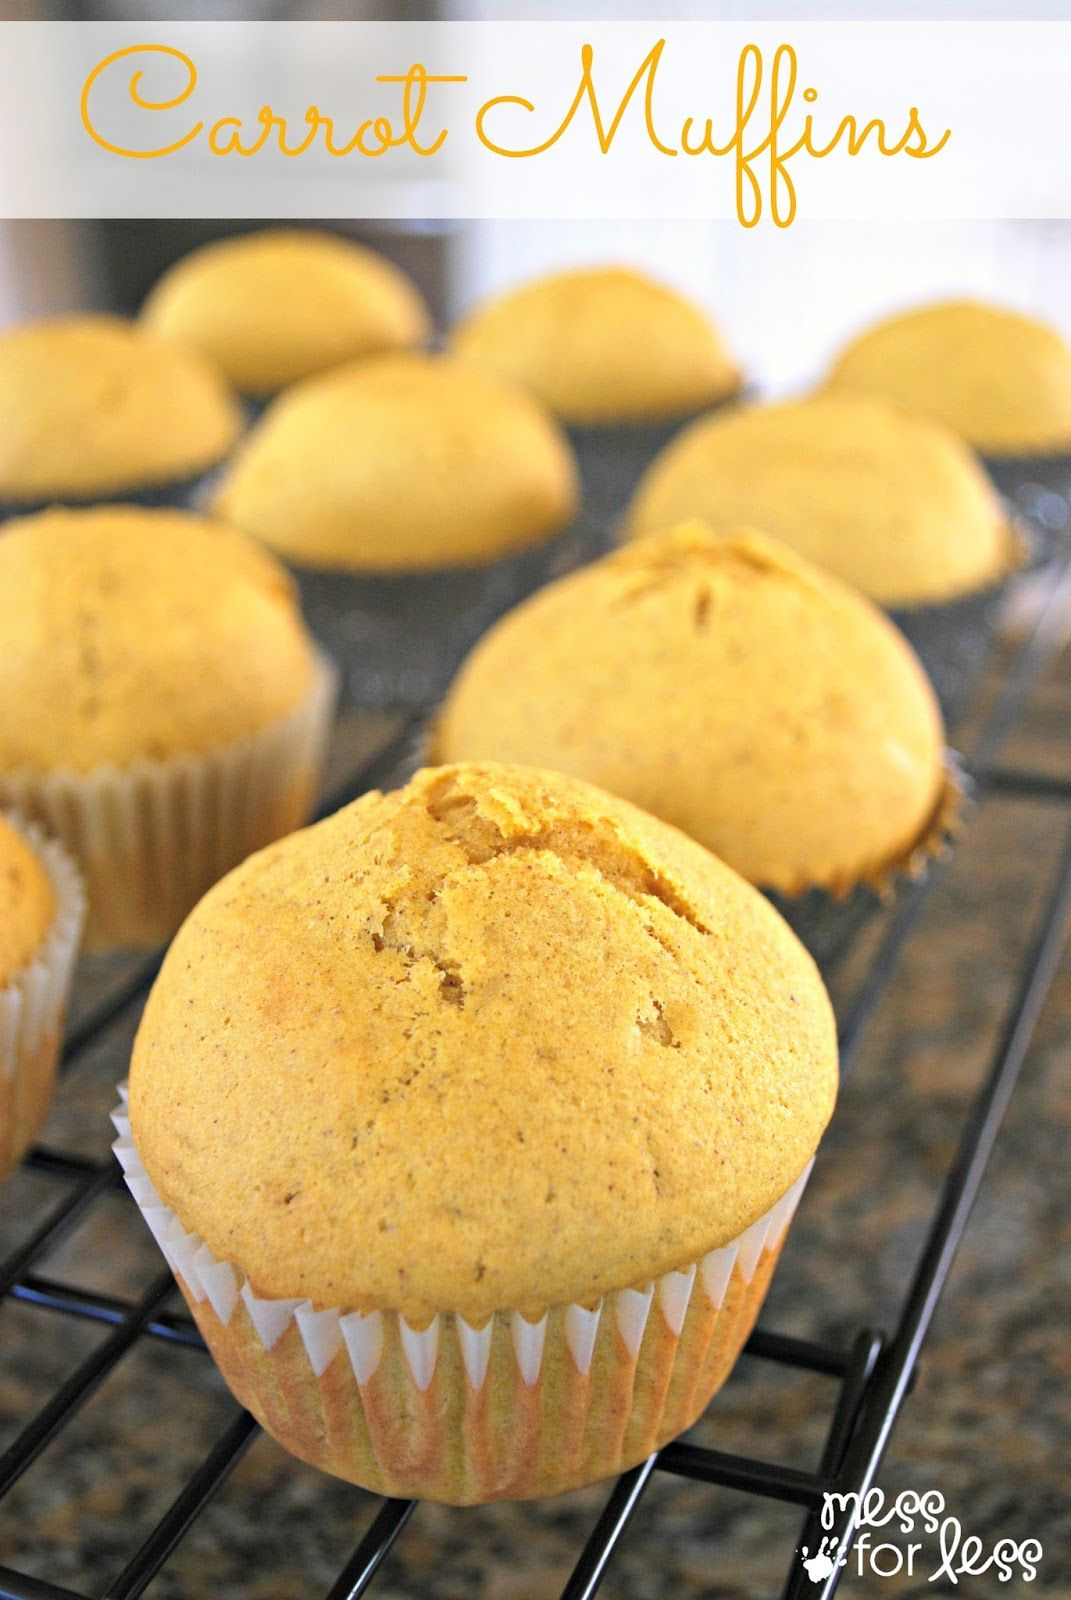 Carrot Muffin Recipe for Kids